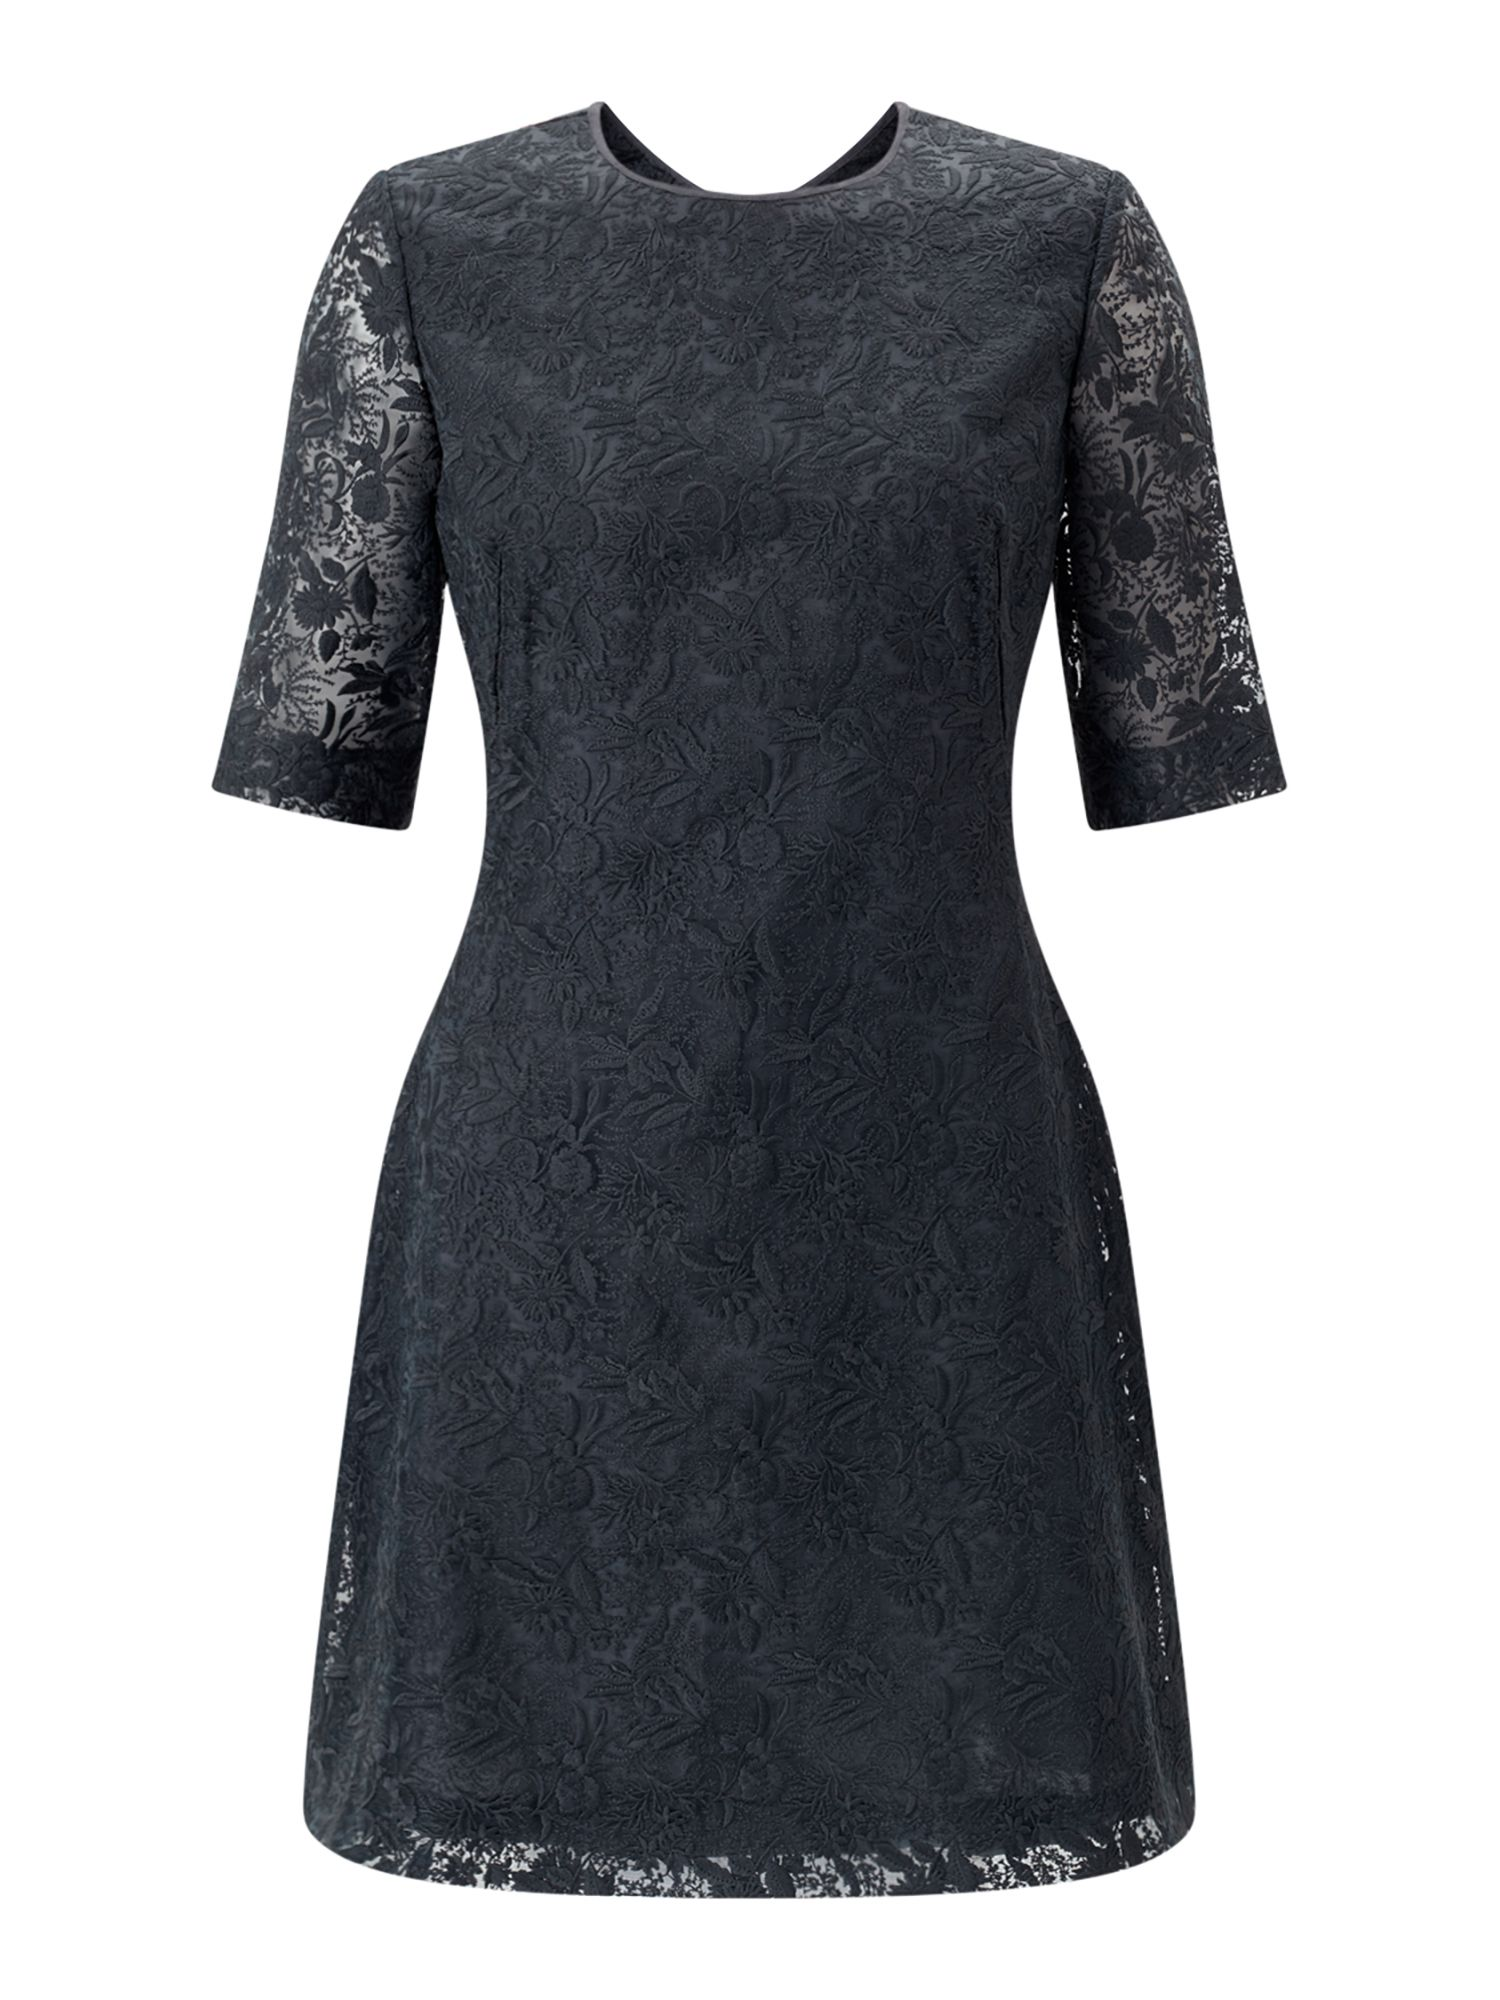 Jigsaw Iris Lace Dress, Grey